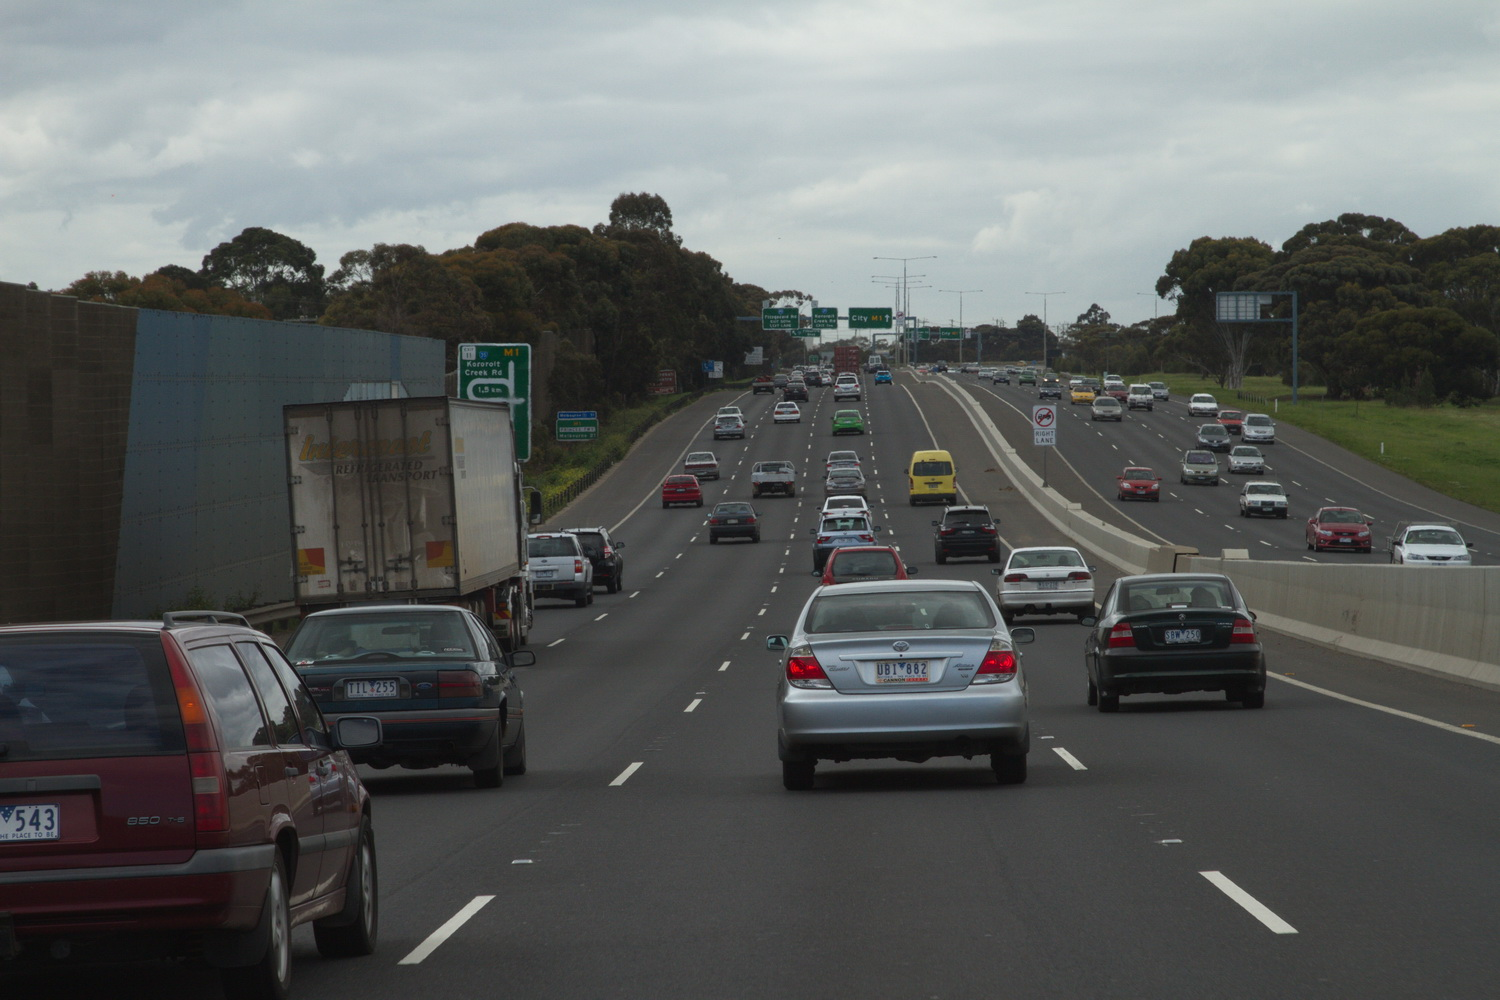 Myth-Busting: Does constantly changing lanes get you there faster?